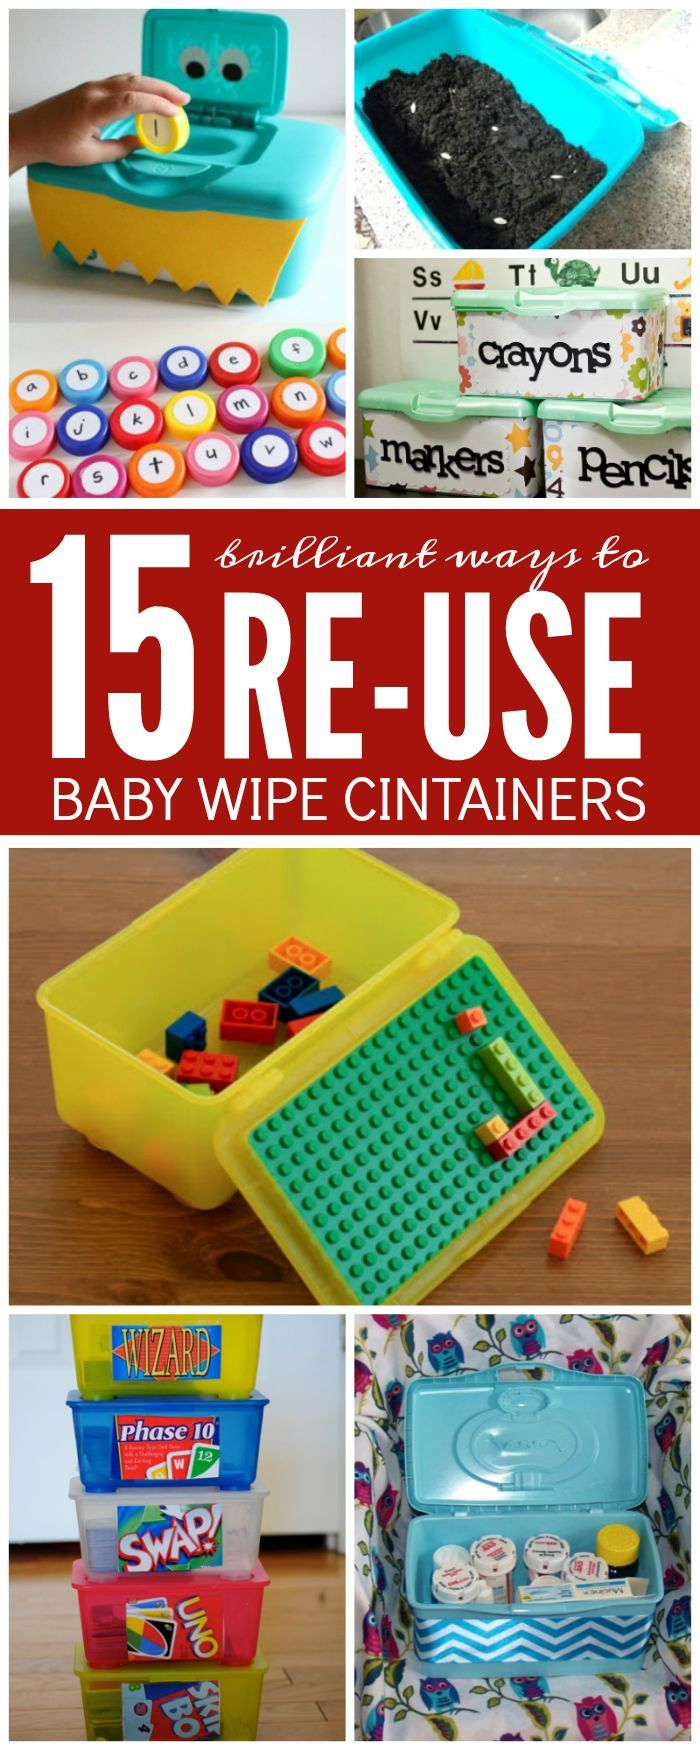 Check out these 15 Surprising Ways to Re-Use Baby Wipe Containers, you will be up cycling your products and you can use them for some really, really great ideas!